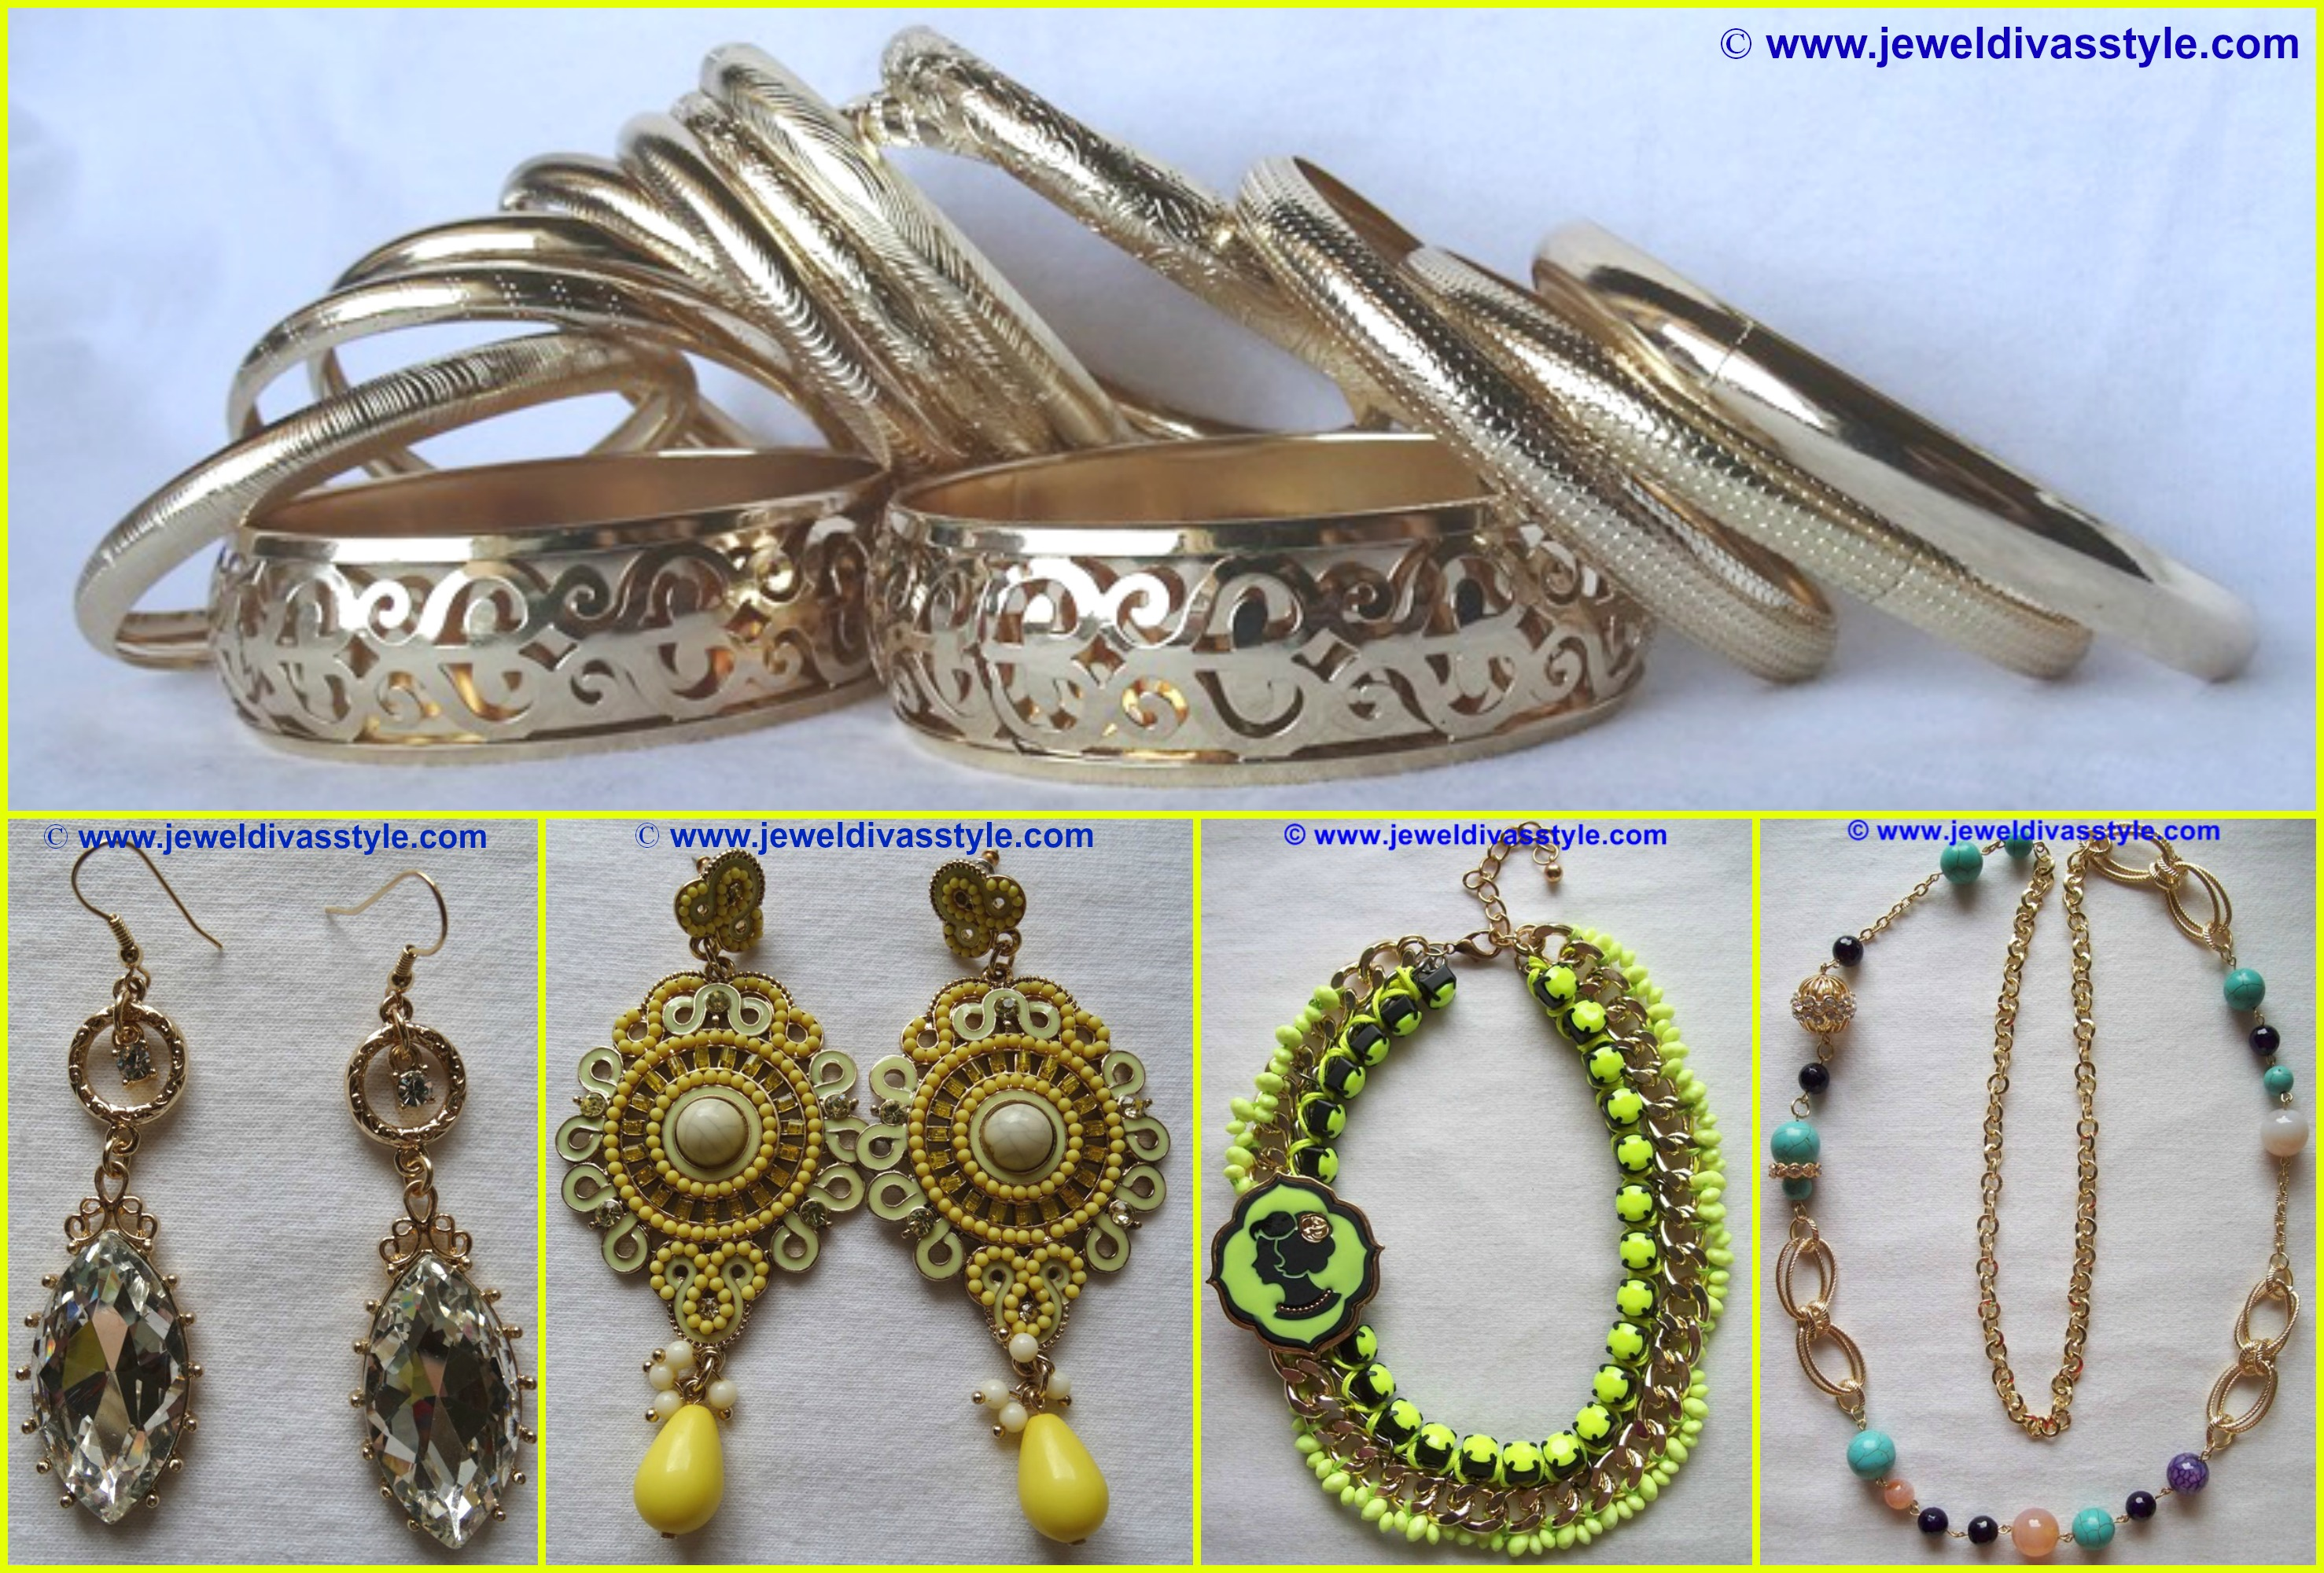 MY PERSONAL COLLECTION: Yellow, Gold and Multi Gold jewellery